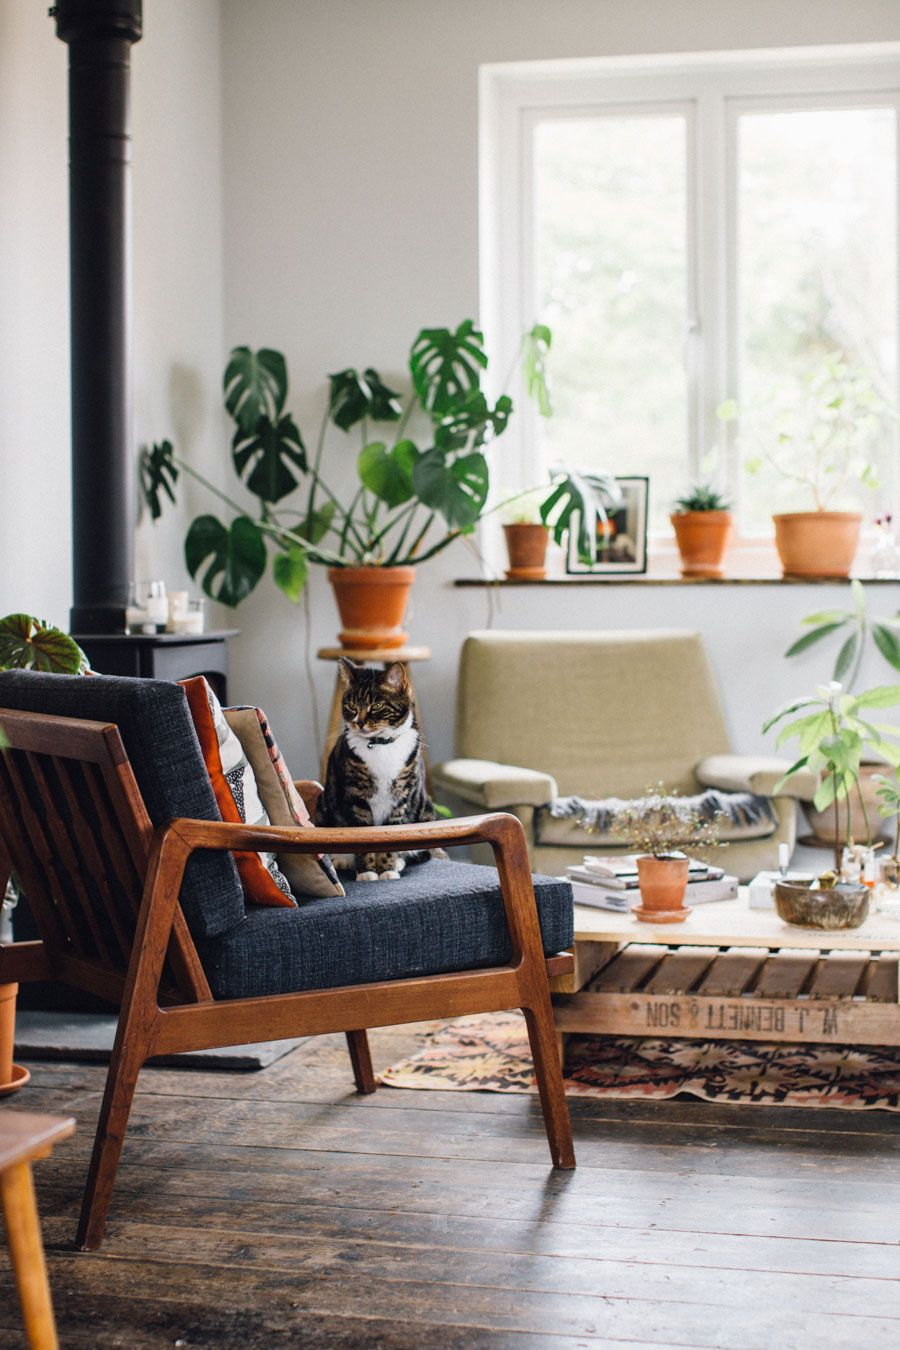 Cats And Plants A Plant Filled Living Space Home Decor